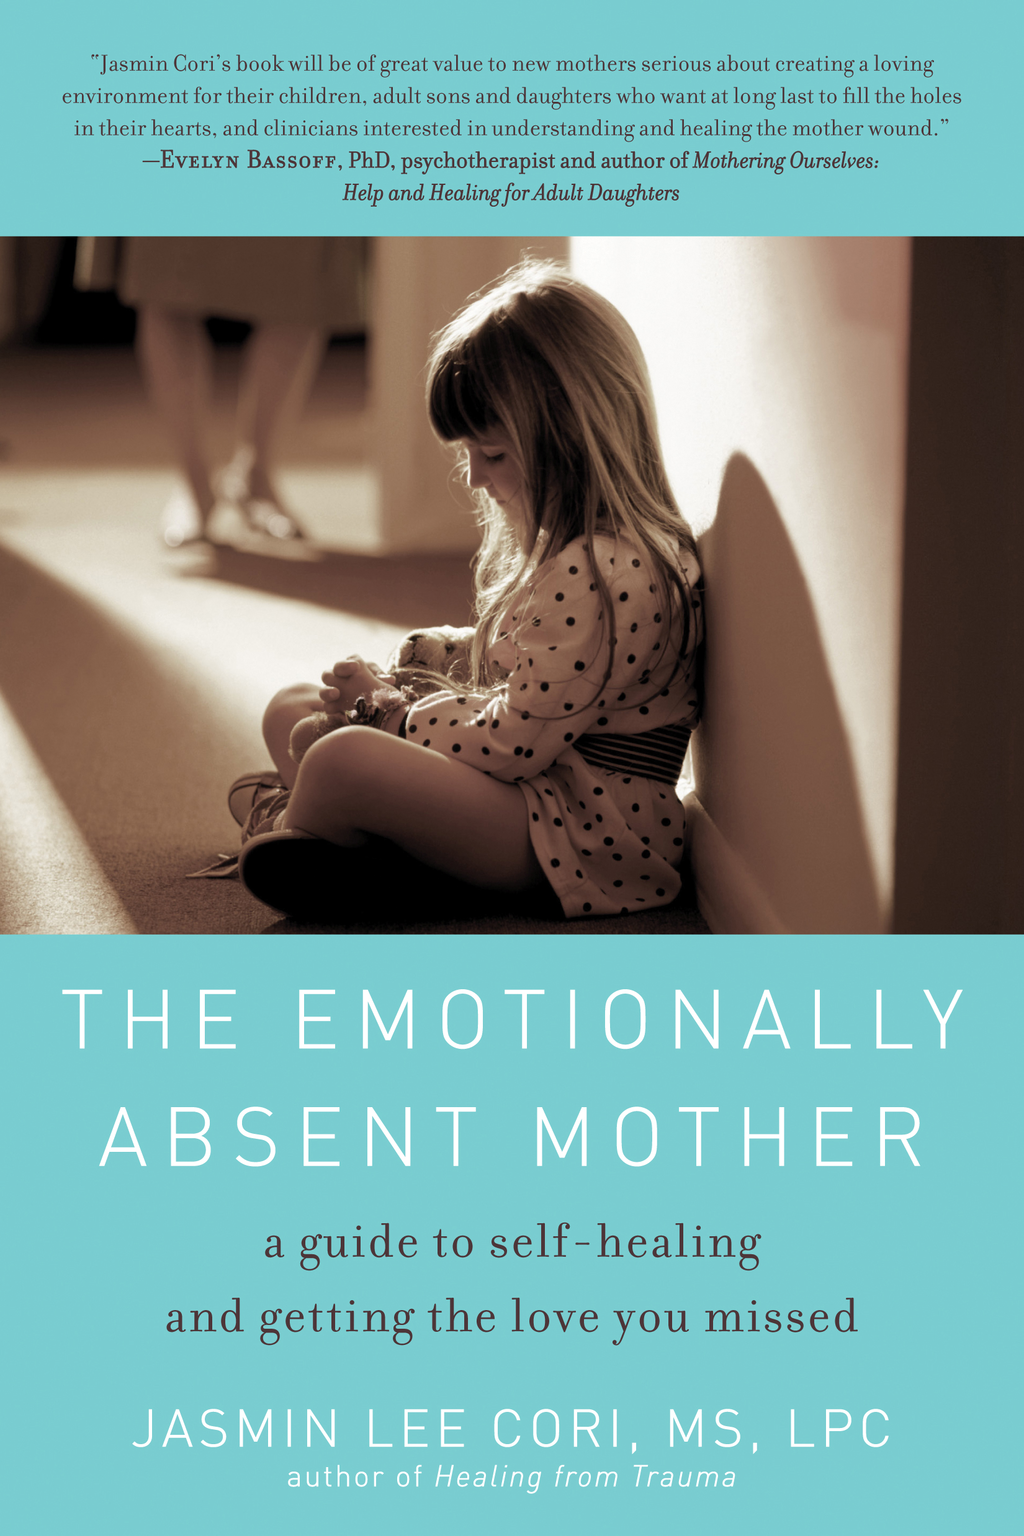 The Emotionally Absent Mother: A Guide to Self-Healing and Getting the Love You Missed By: Jasmin Lee Cori